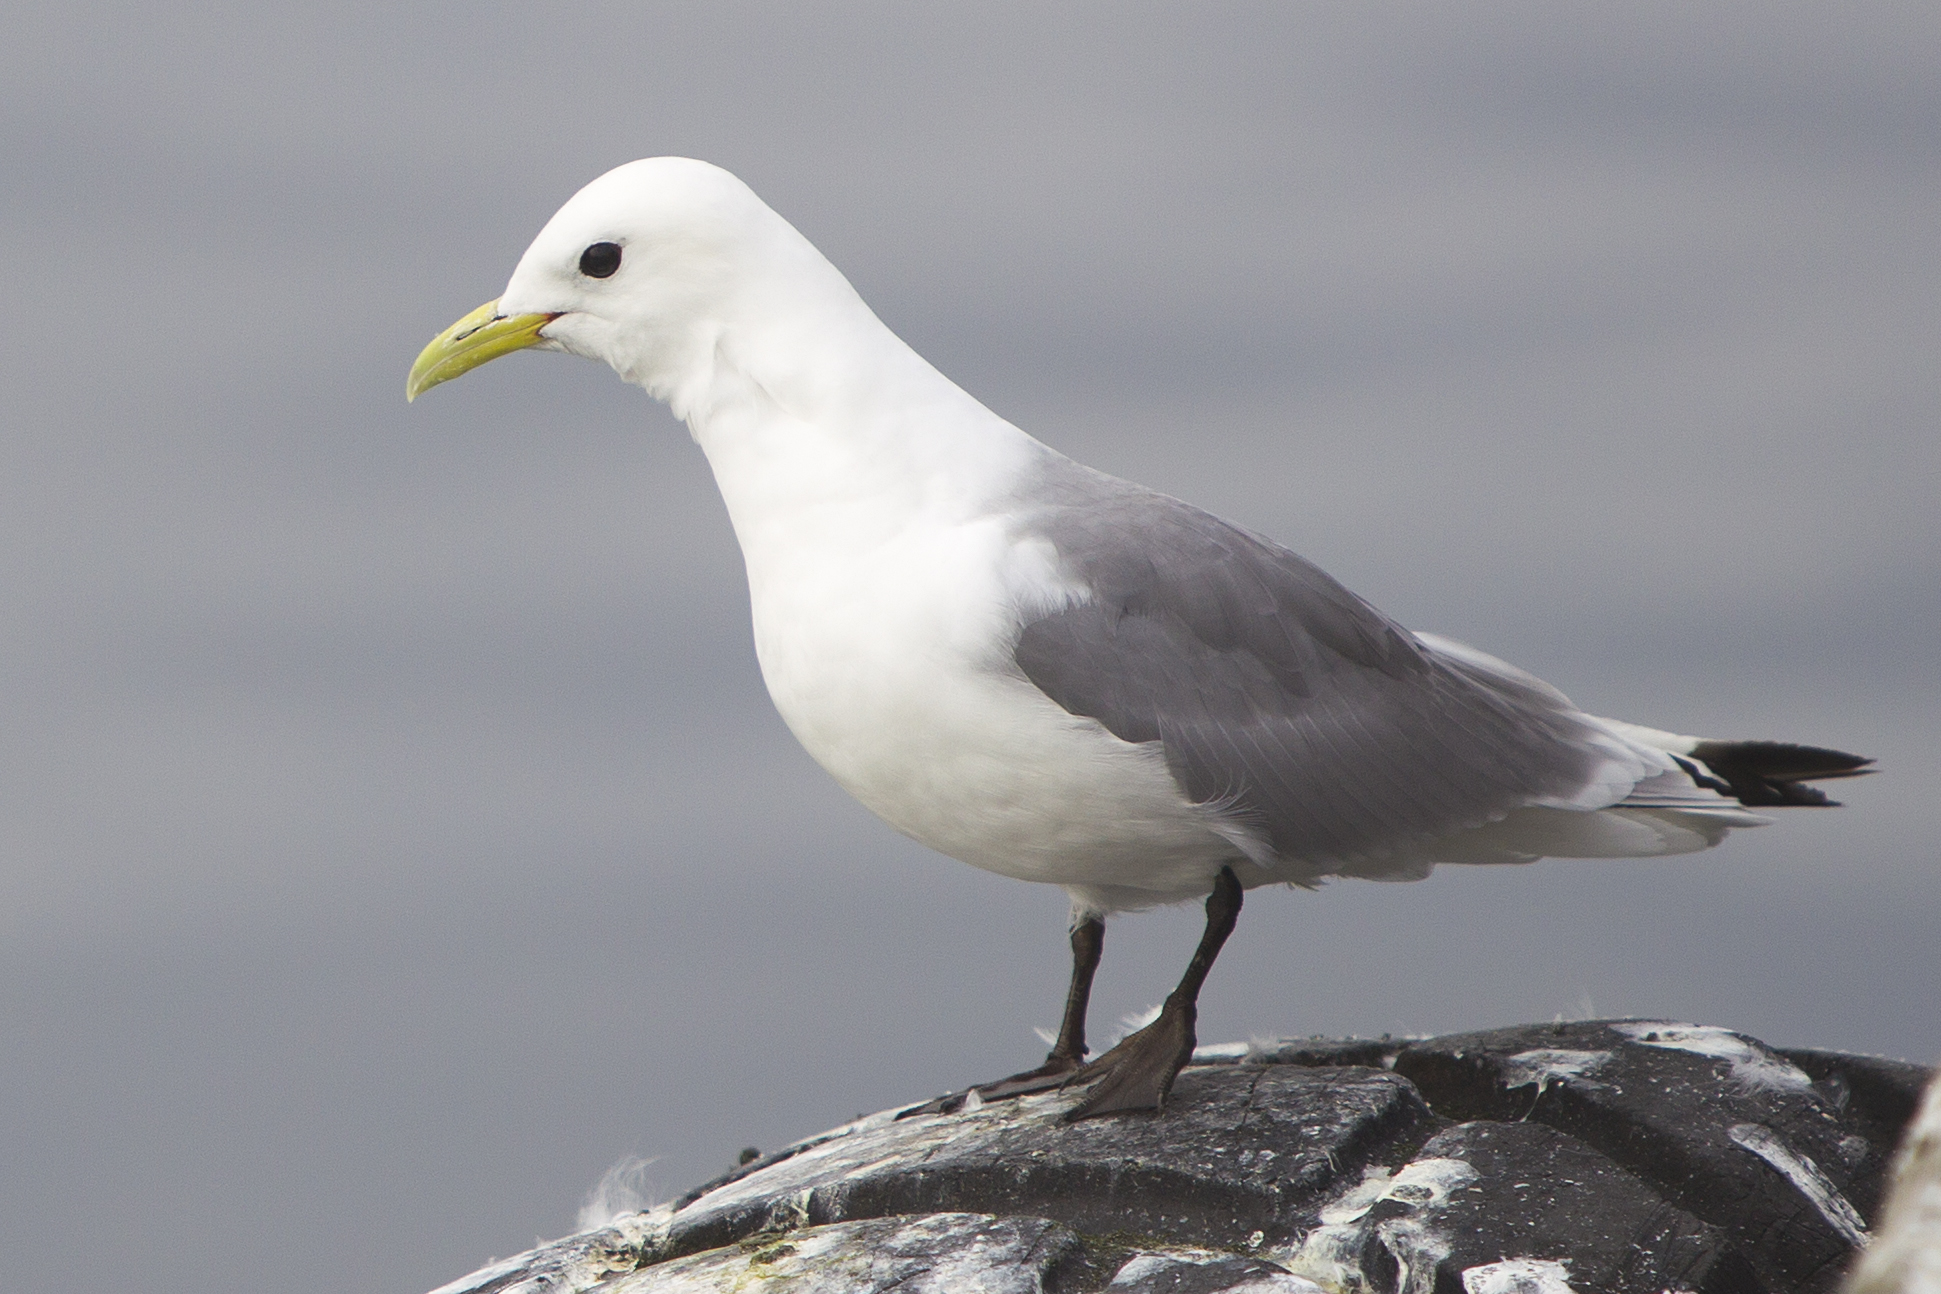 Black-legged kittiwake - Wikipedia